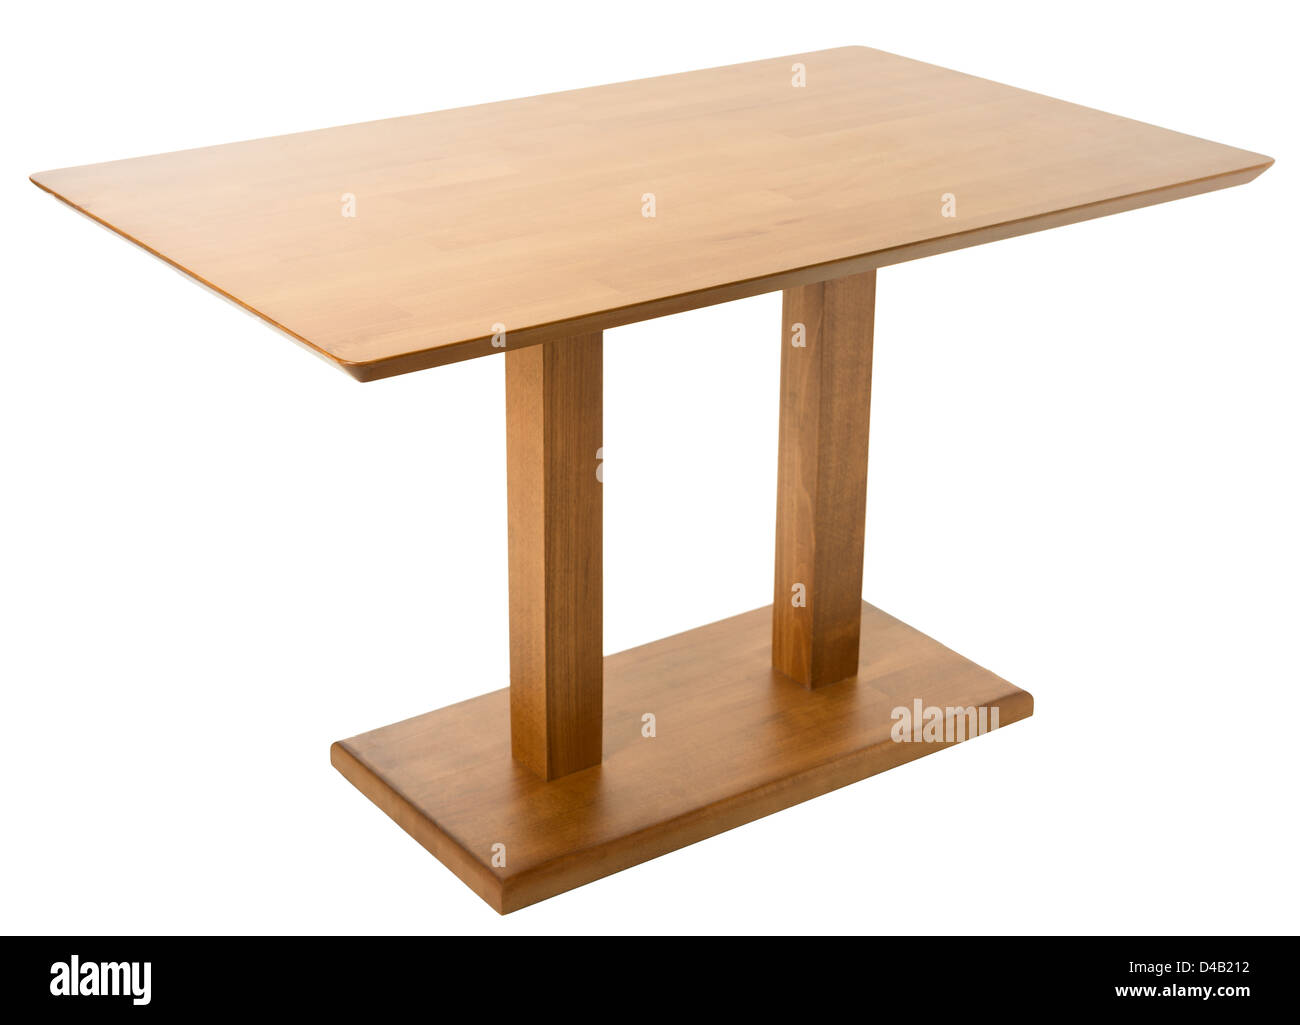 Wooden table isolated on white - Stock Image